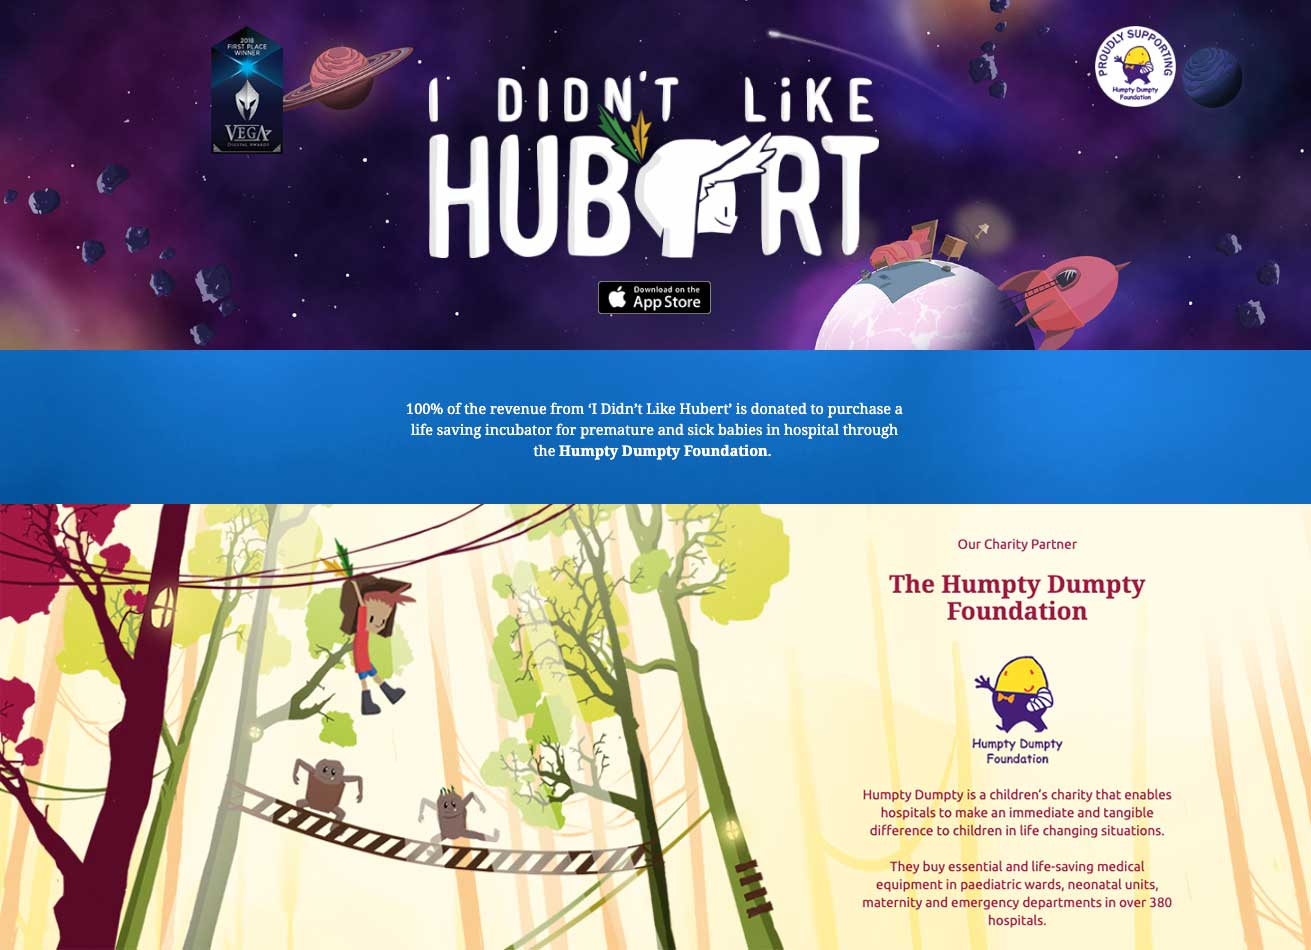 I Didn't Like Hubert | Taste Creative